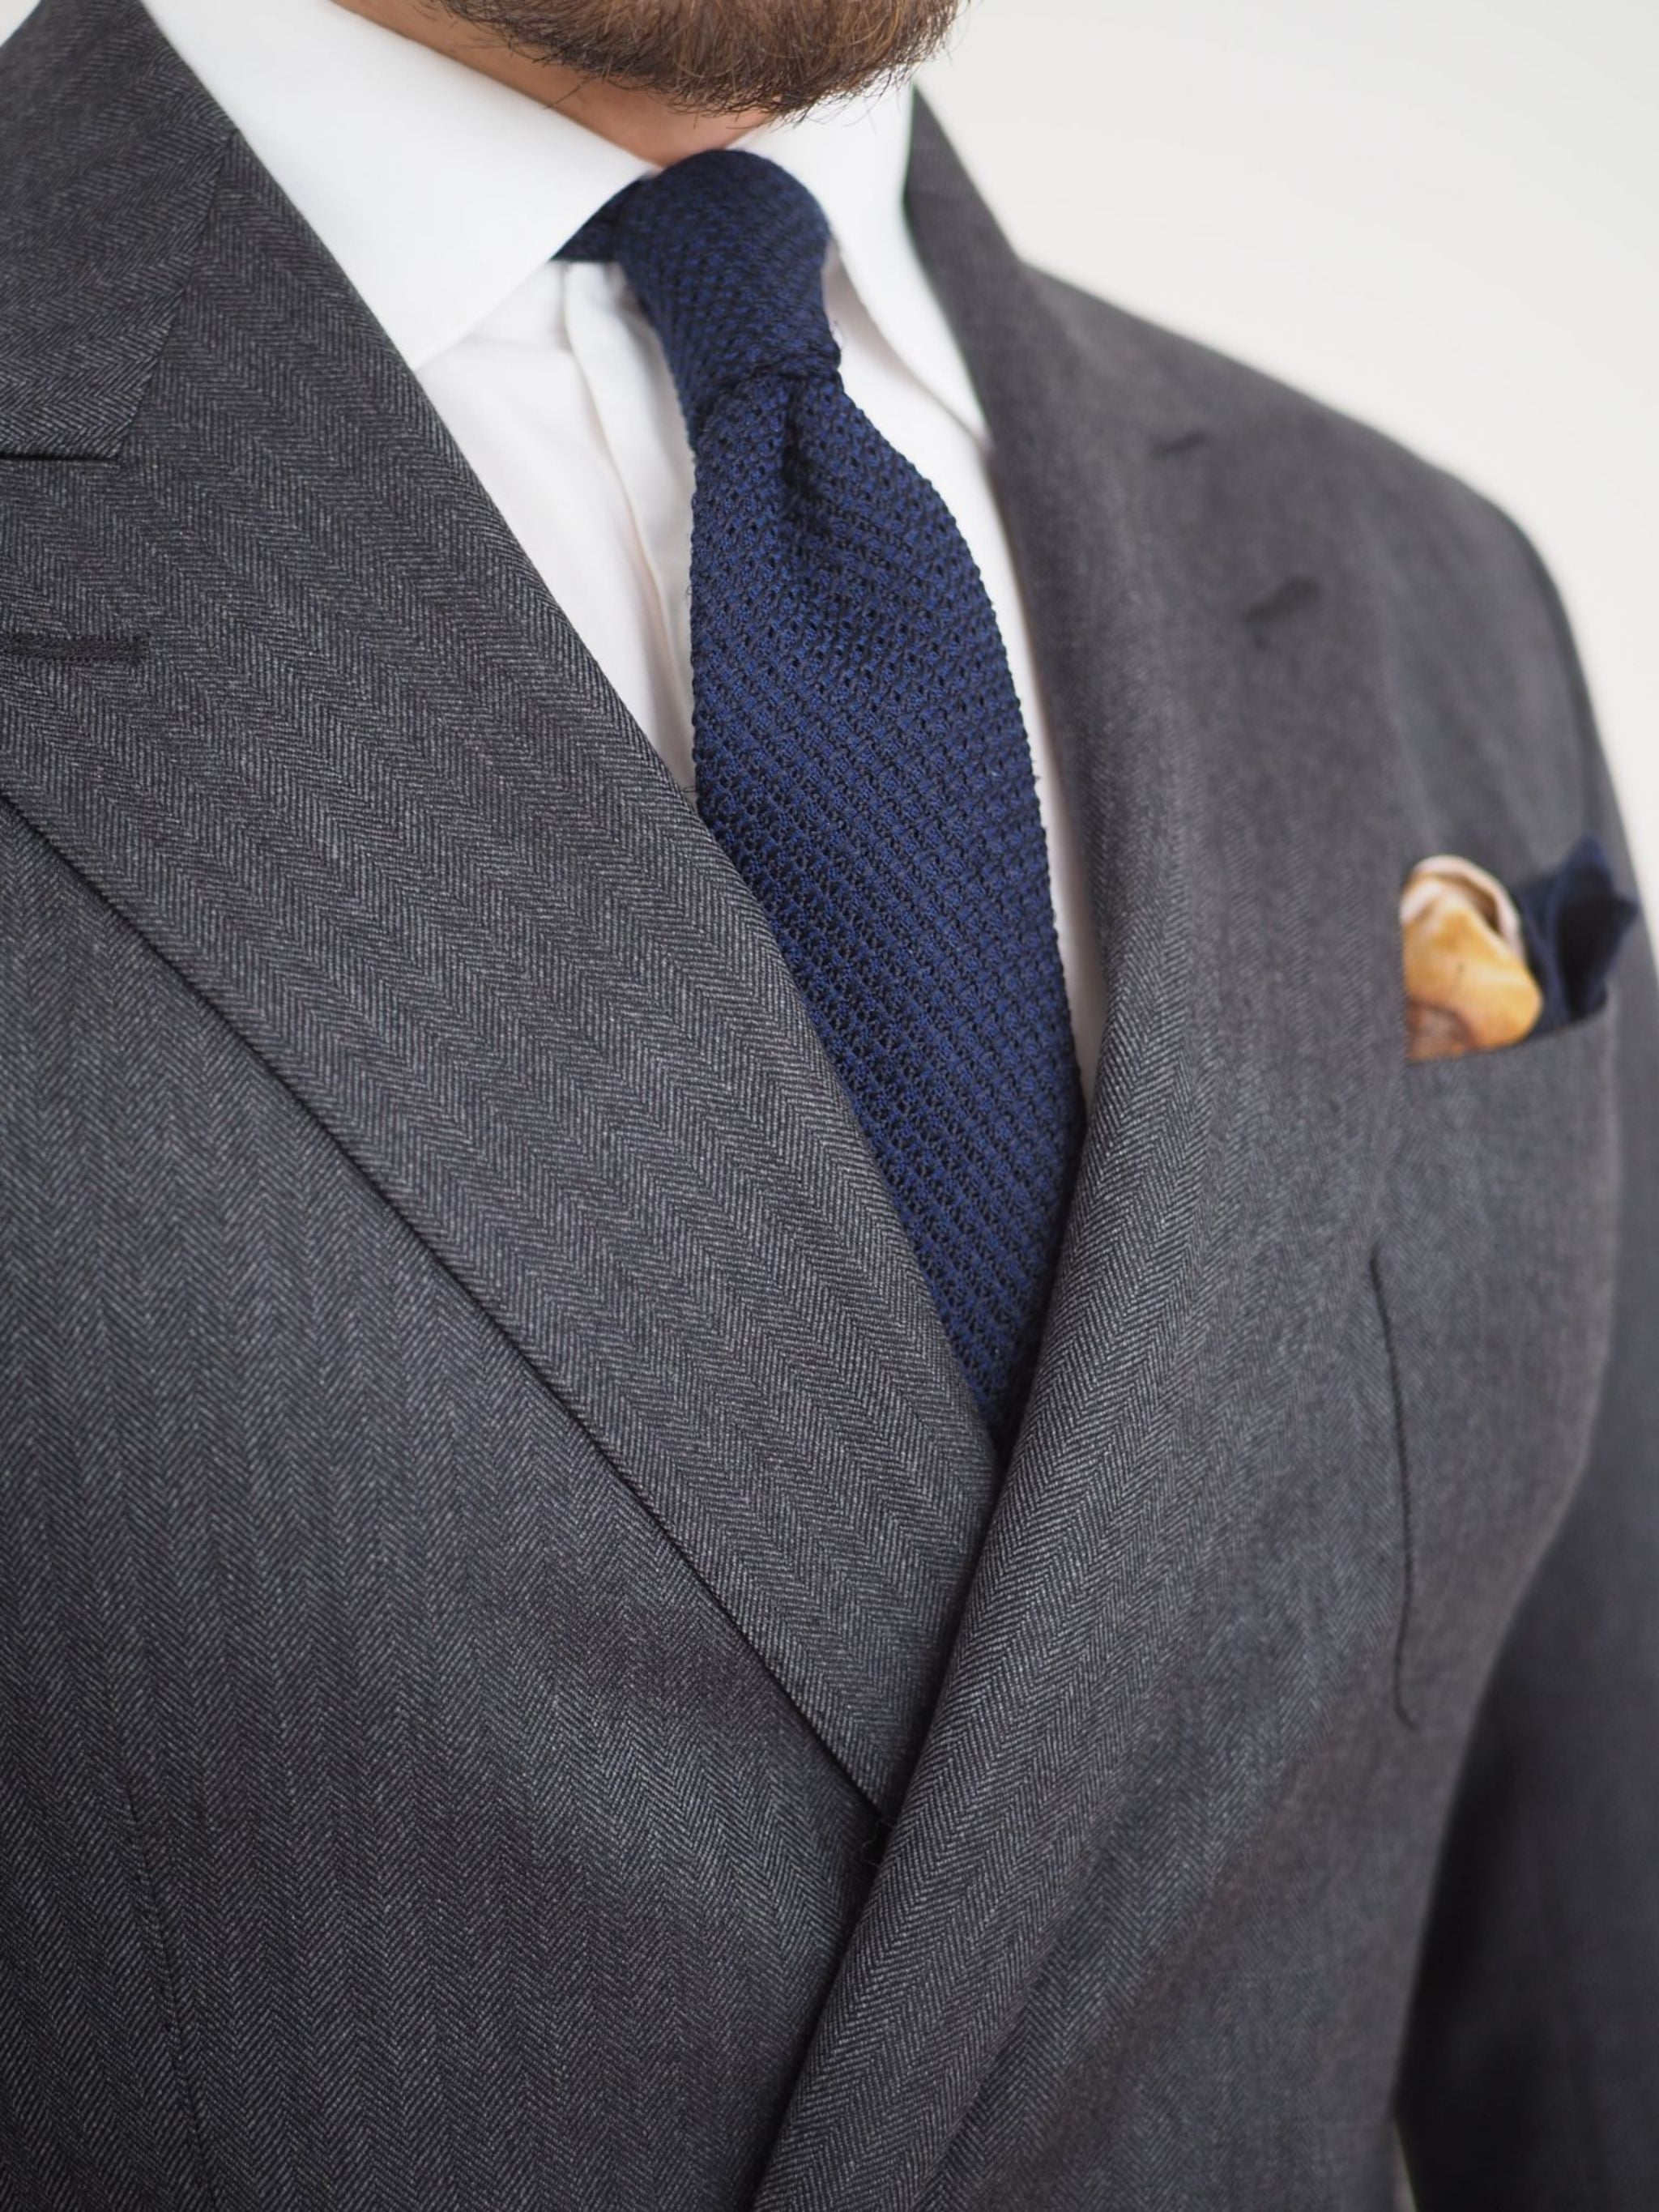 Gray double-breasted suit with blue silk-wool grenadine tie - details and textures.